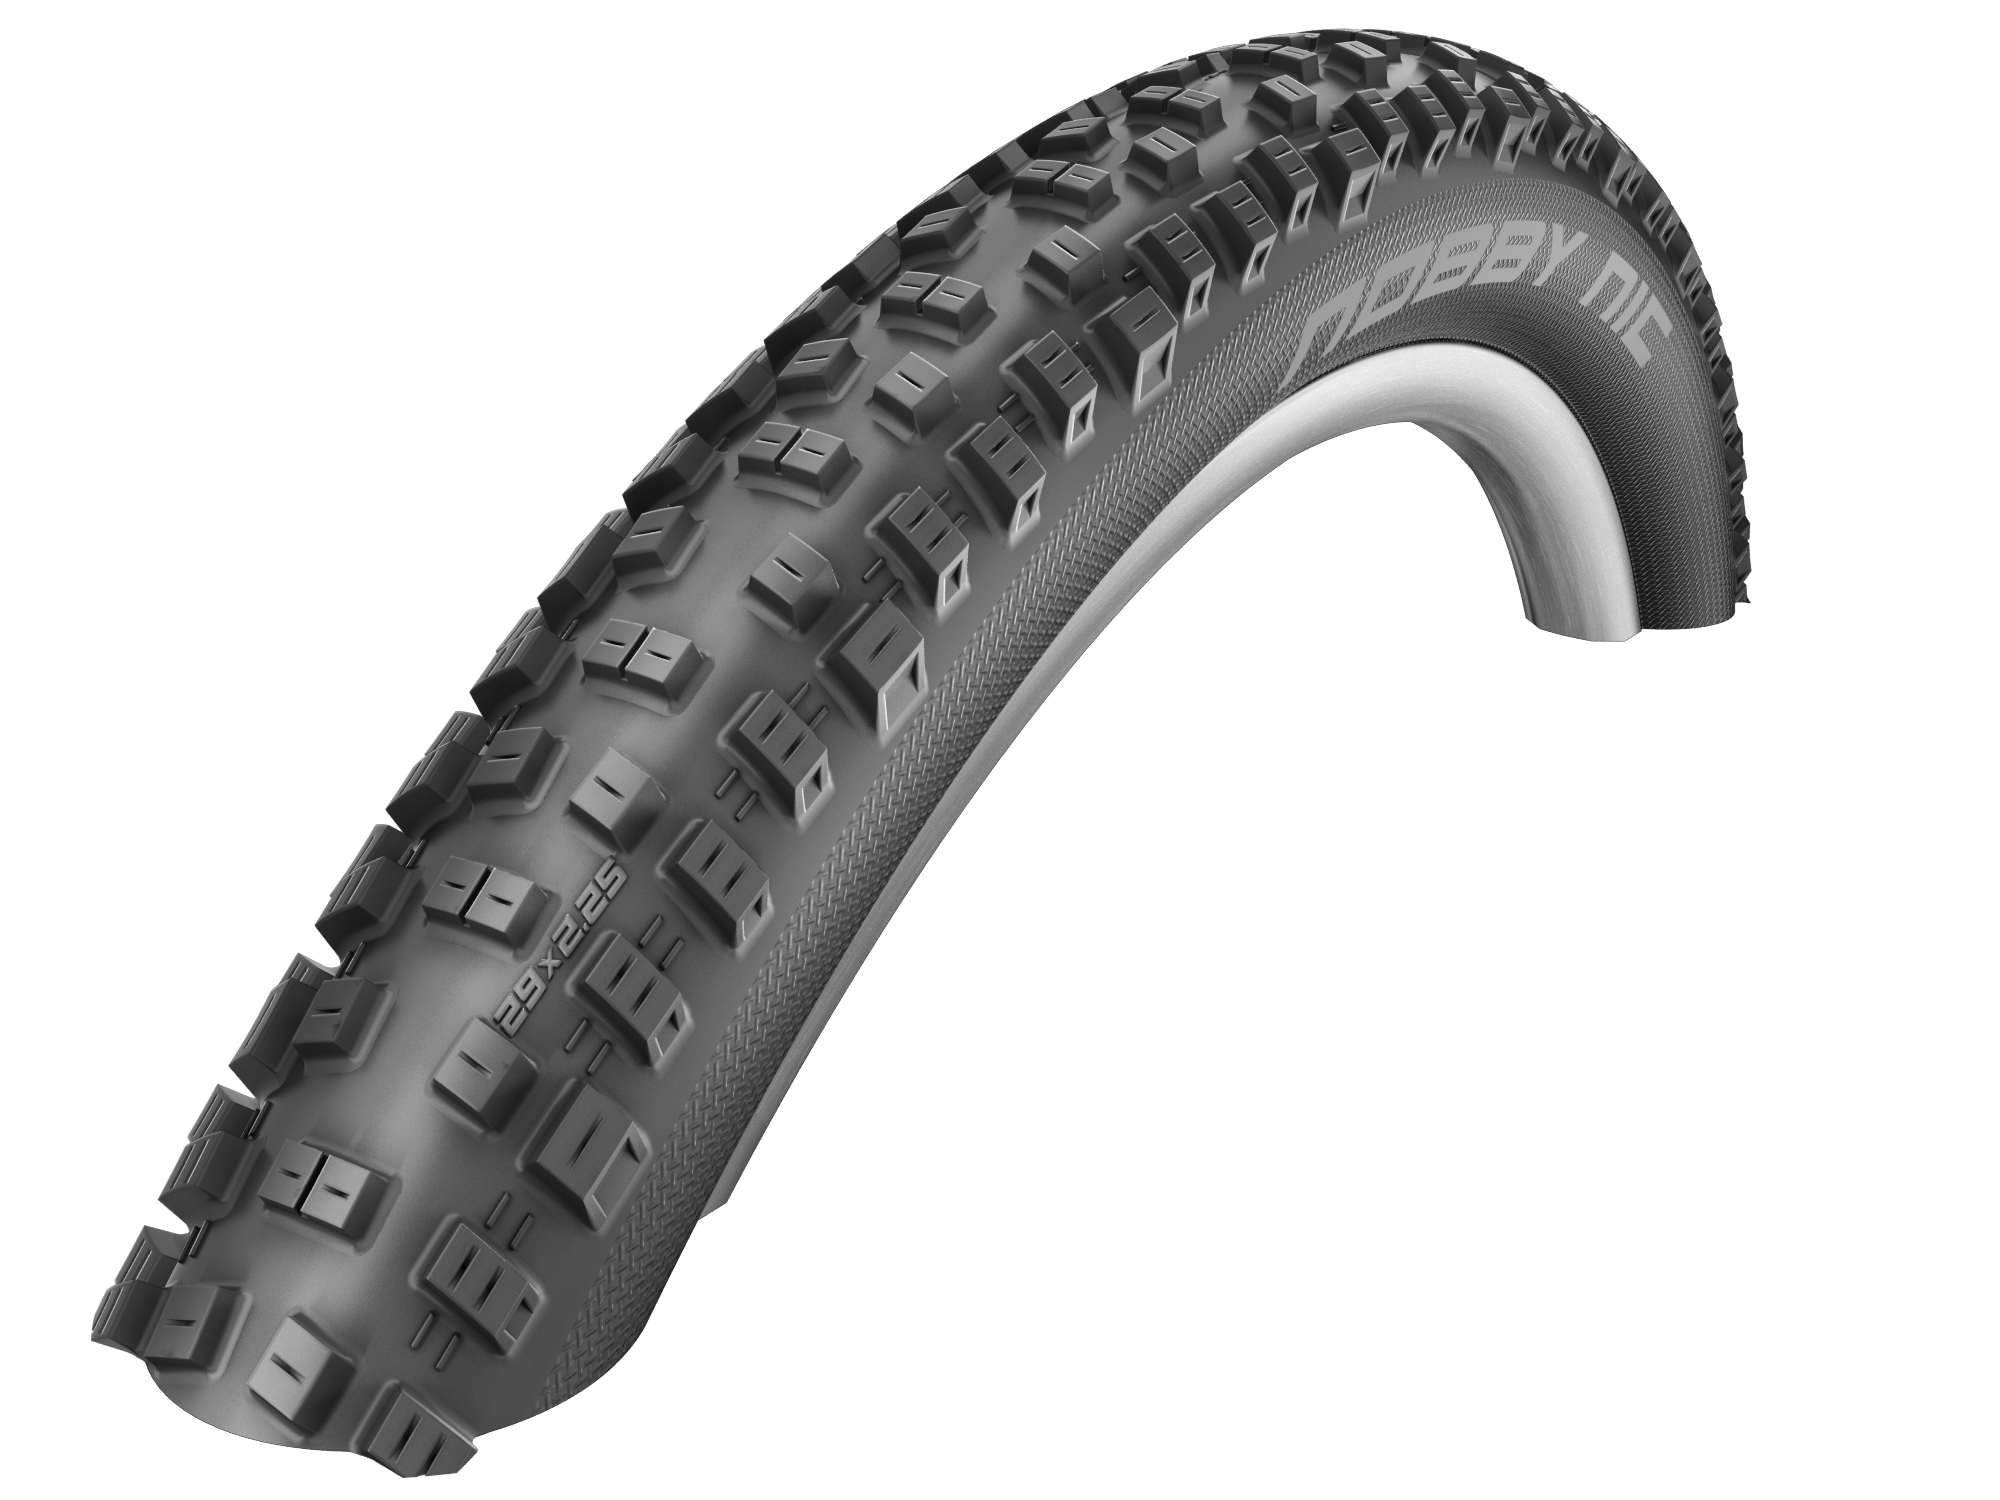 Schwalbe Nobby Nic 27.5x2.35 Performance Double Defense Faltreifen